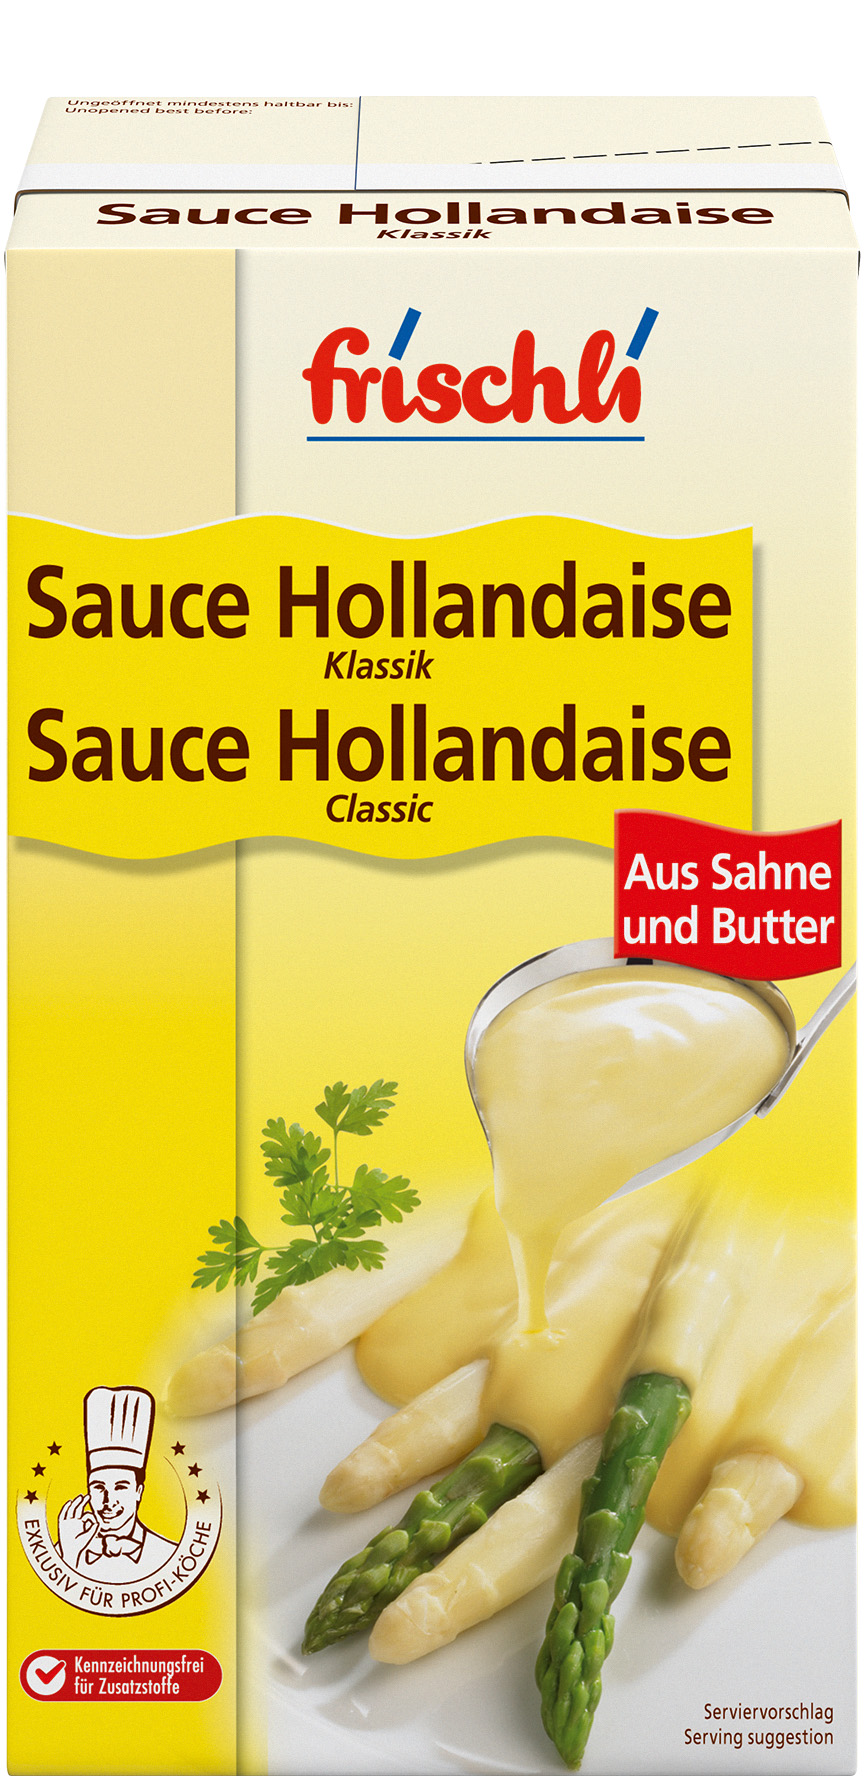 ... and food   Products   Sauce Hollandaise Classic with cream and butter